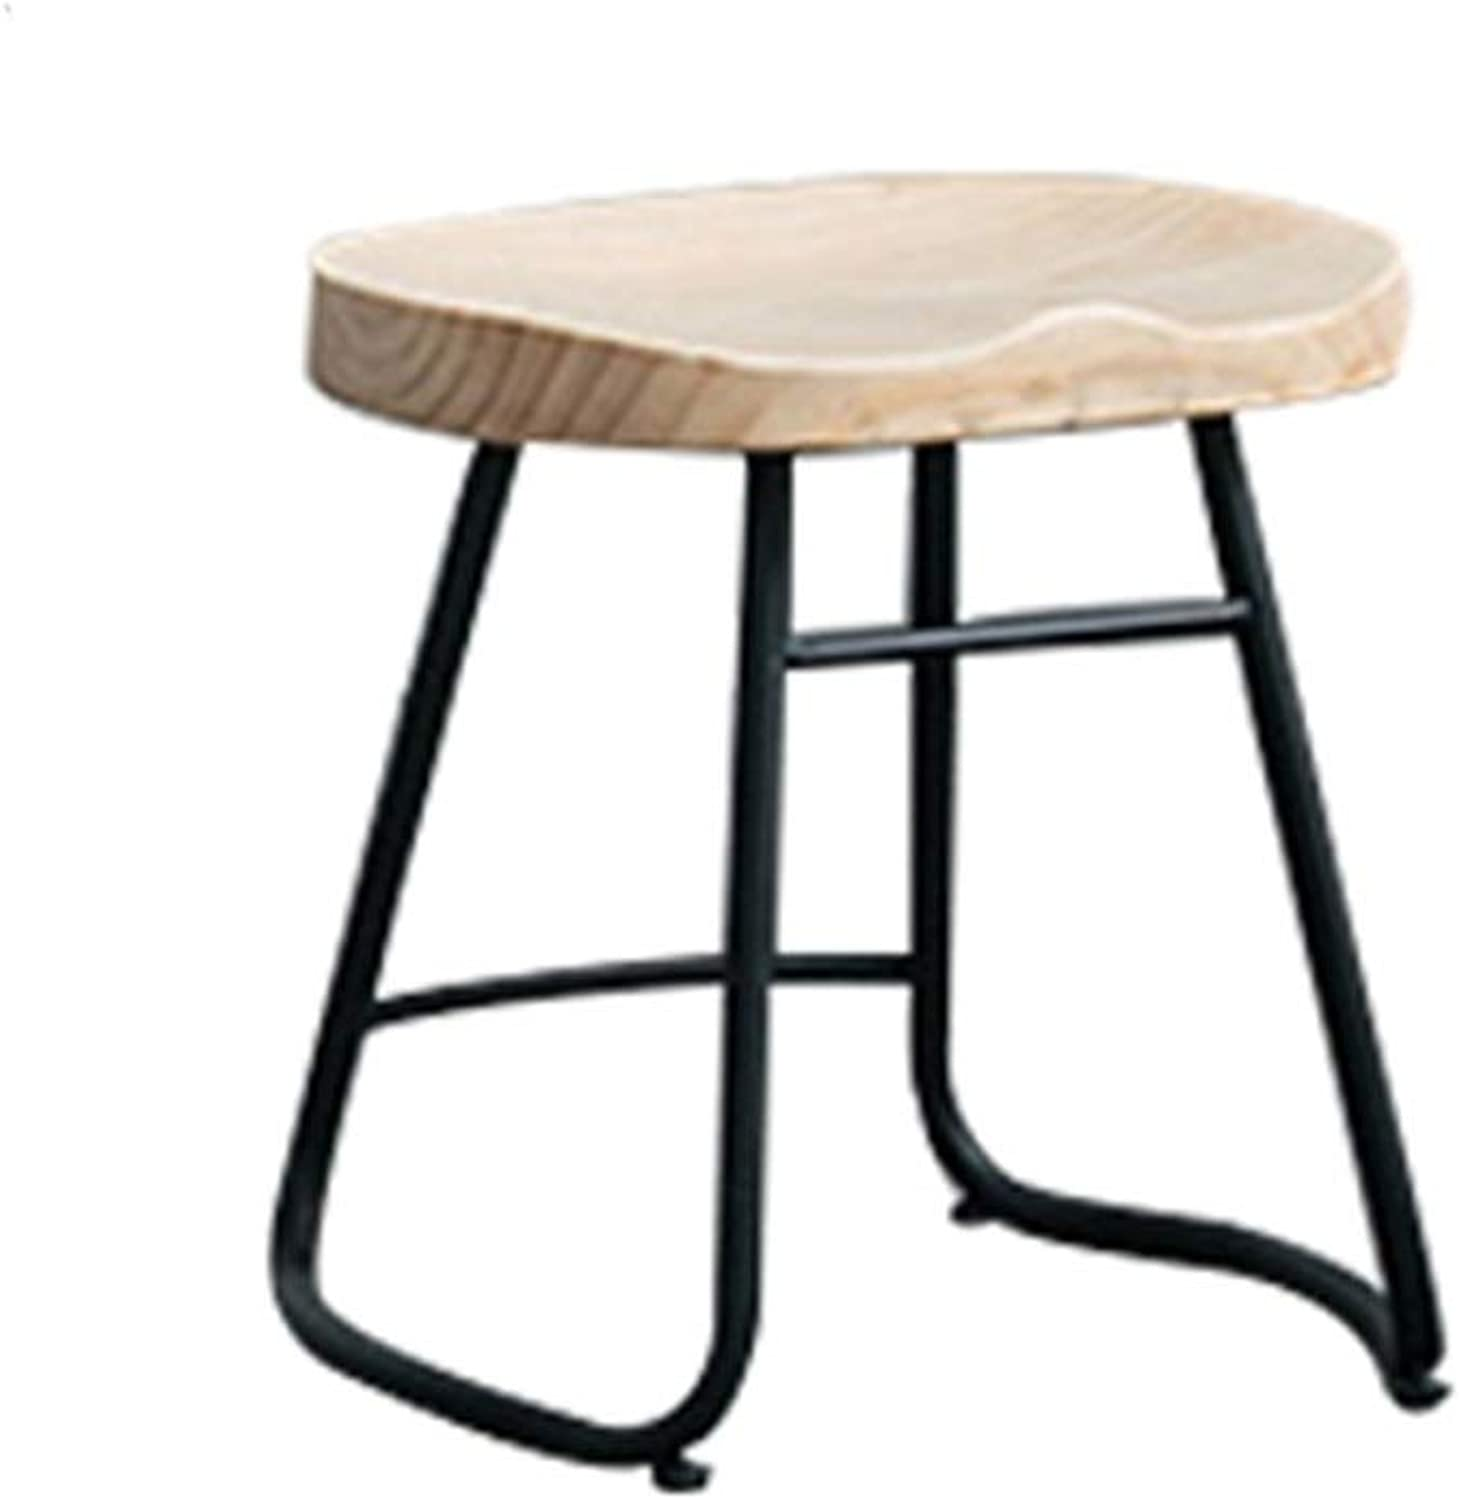 Modern Simple Bar Stool Iron Art High Leg Counter Barchair Breakfast Cafe Household Solid Wood Seat 0522A (Size   45cm Seat Height)